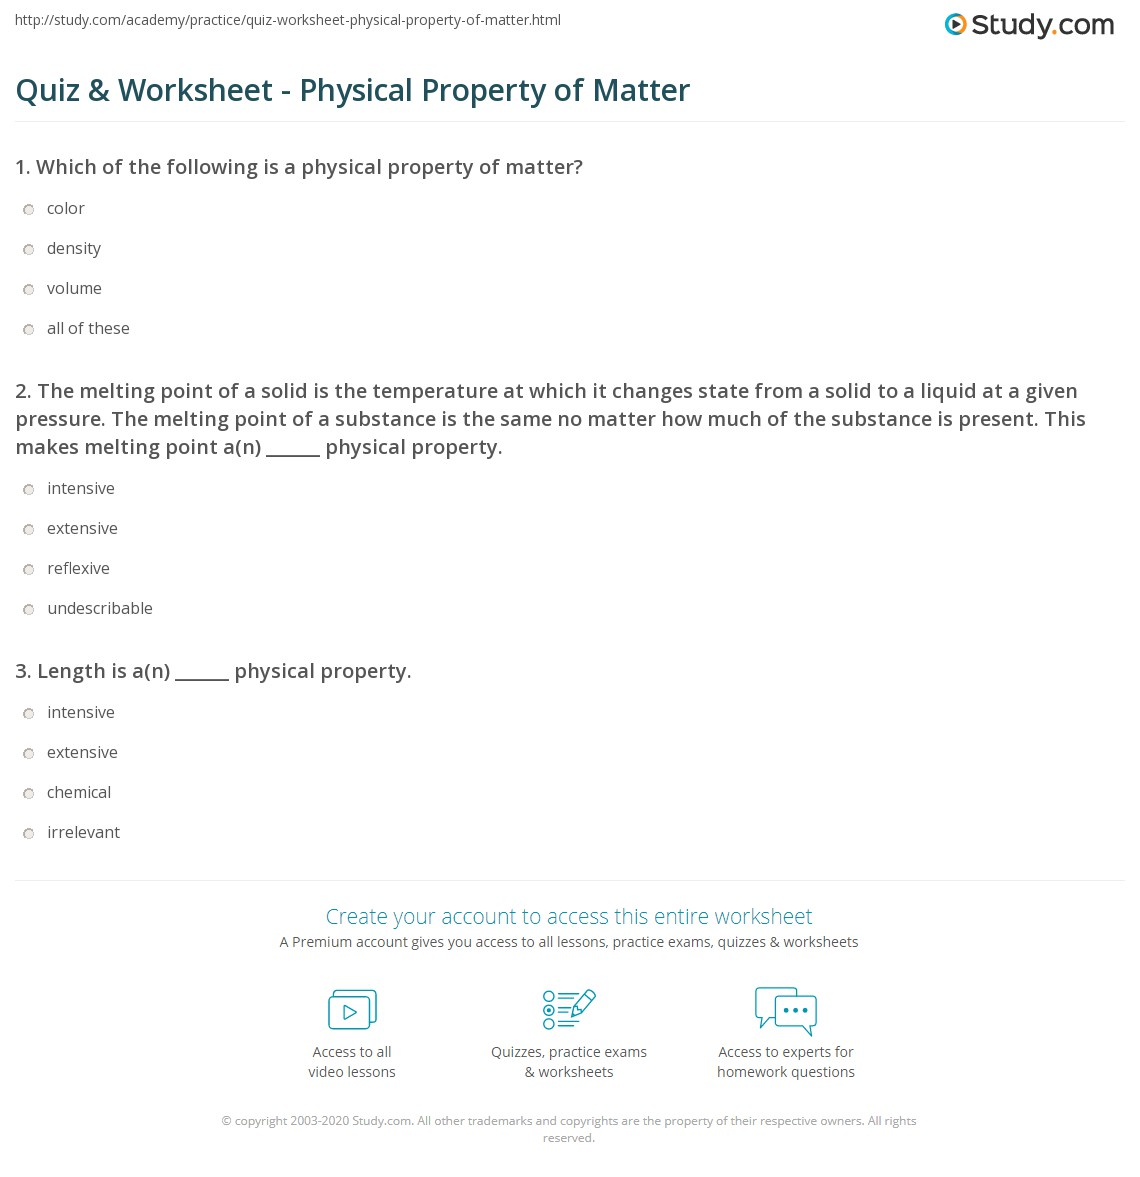 Worksheets Properties Of Matter Worksheet quiz worksheet physical property of matter study com 1 the melting point a solid is temperature at which it changes state from to liquid given pressure point